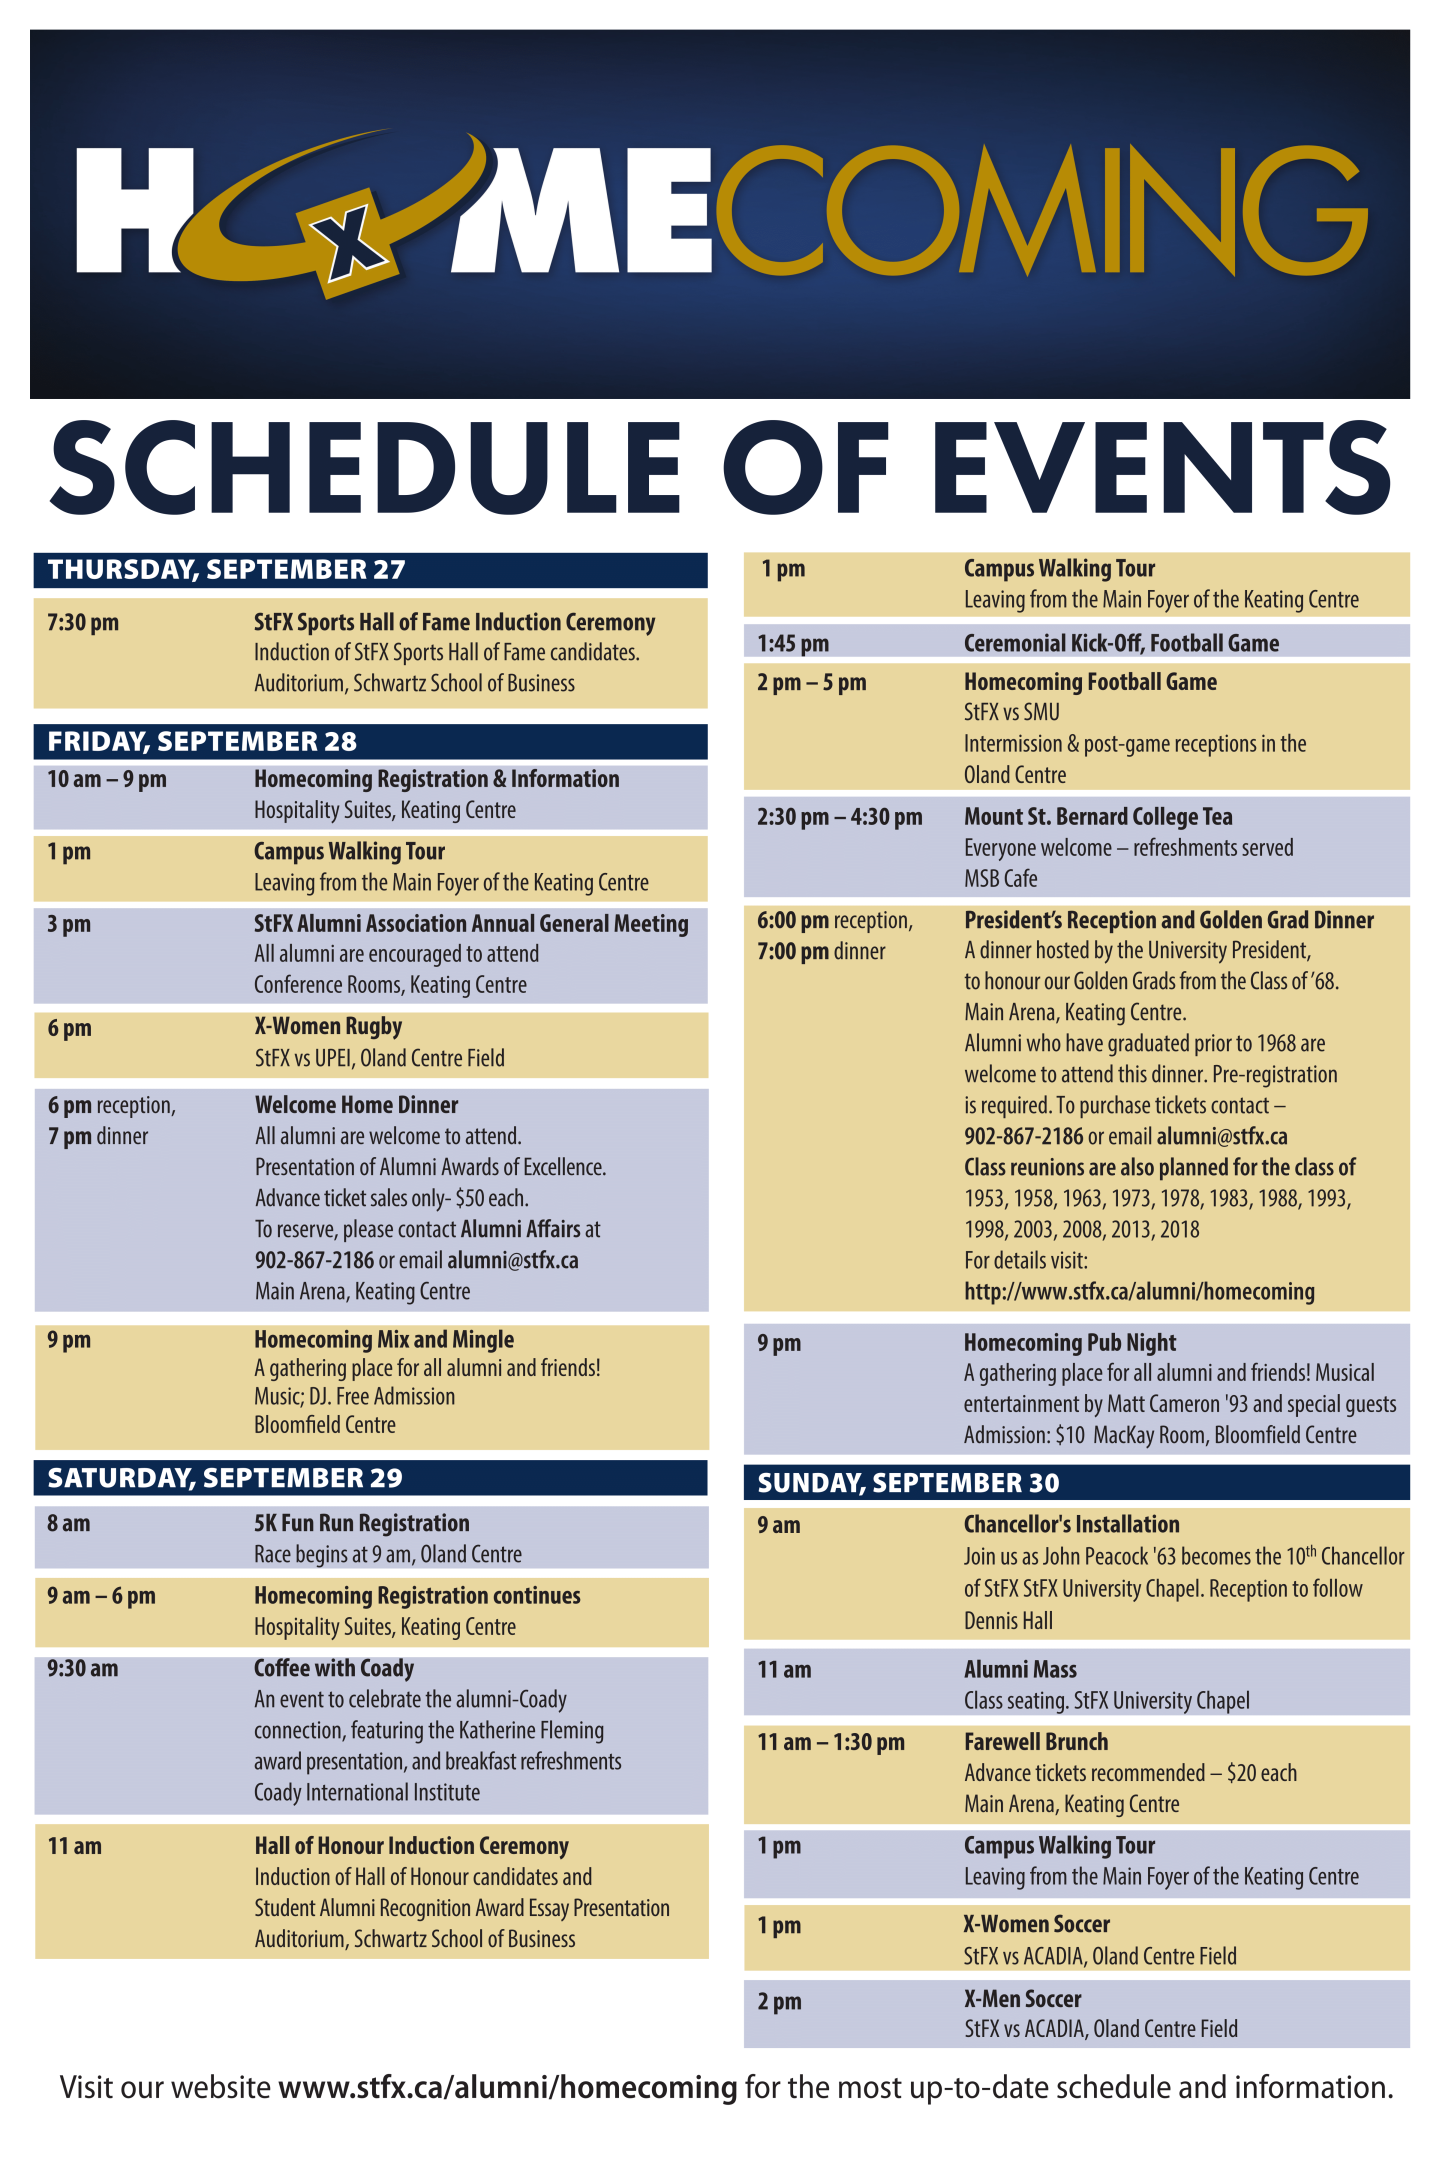 StFX Homecoming 2018 Schedule